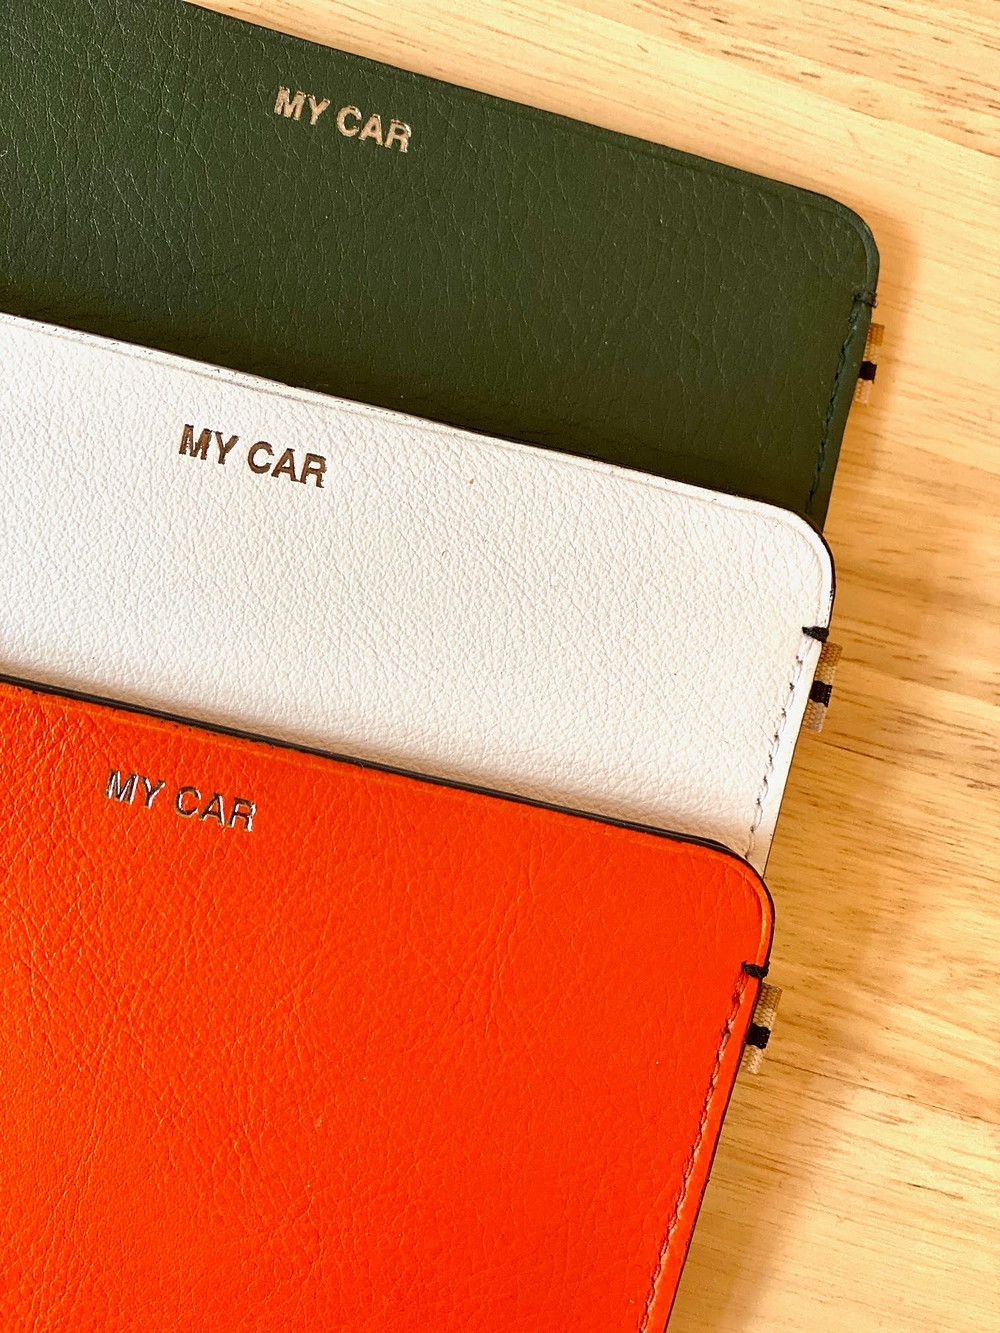 MY CAR - MLS-MarieLaurenceStevigny slim leather wallet - grey, off-white and orange